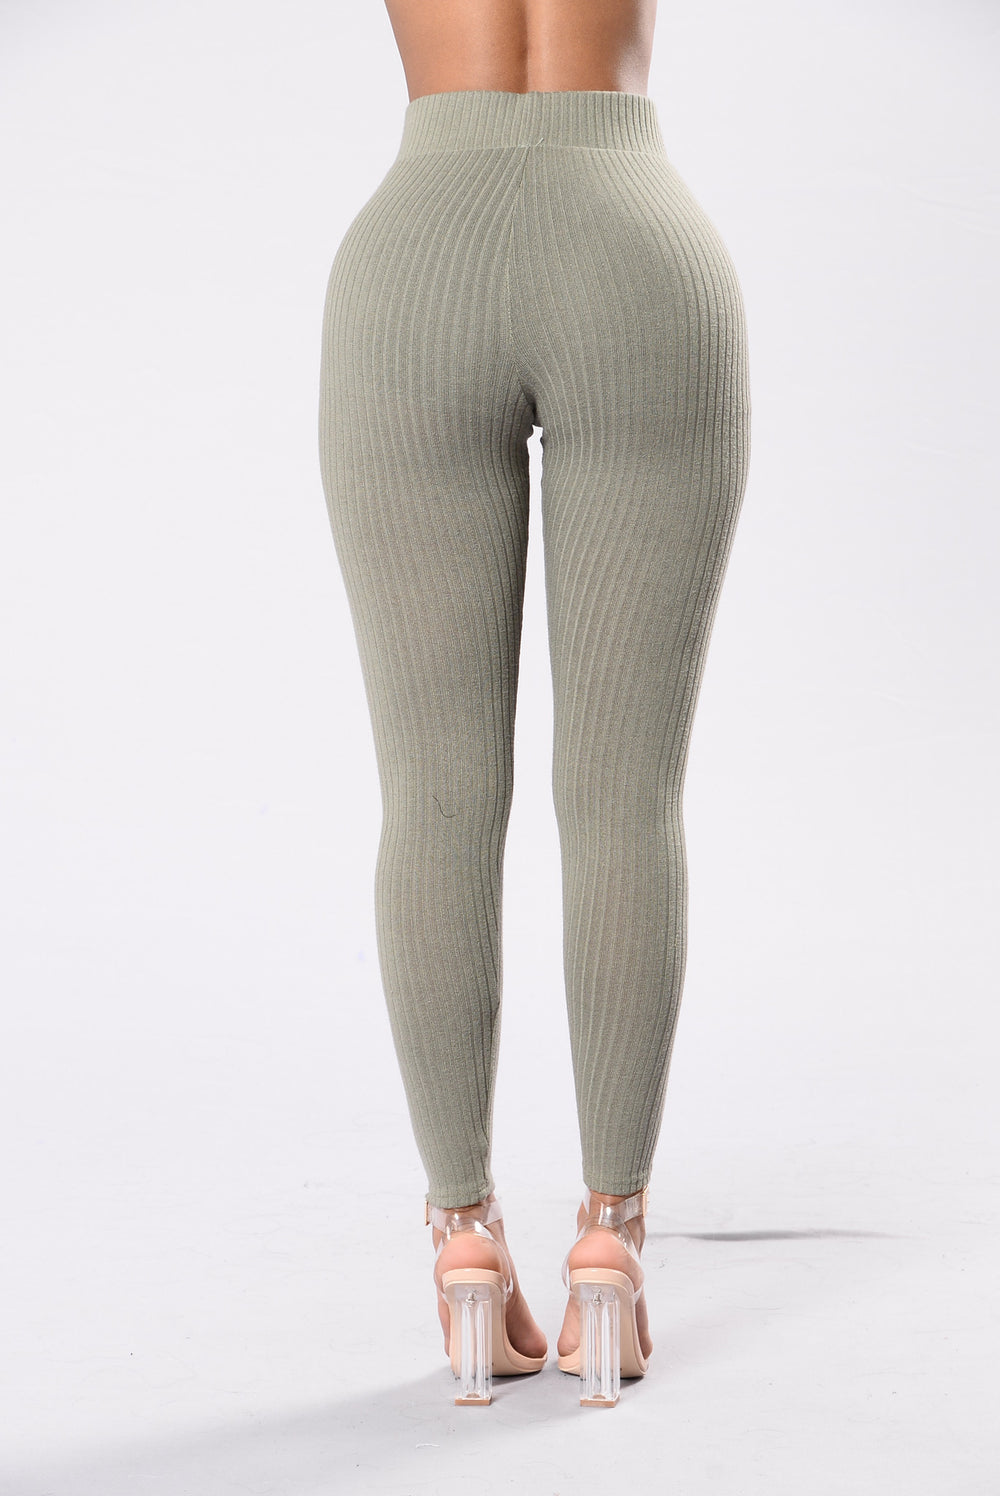 Can't Ignore Me Leggings - Olive